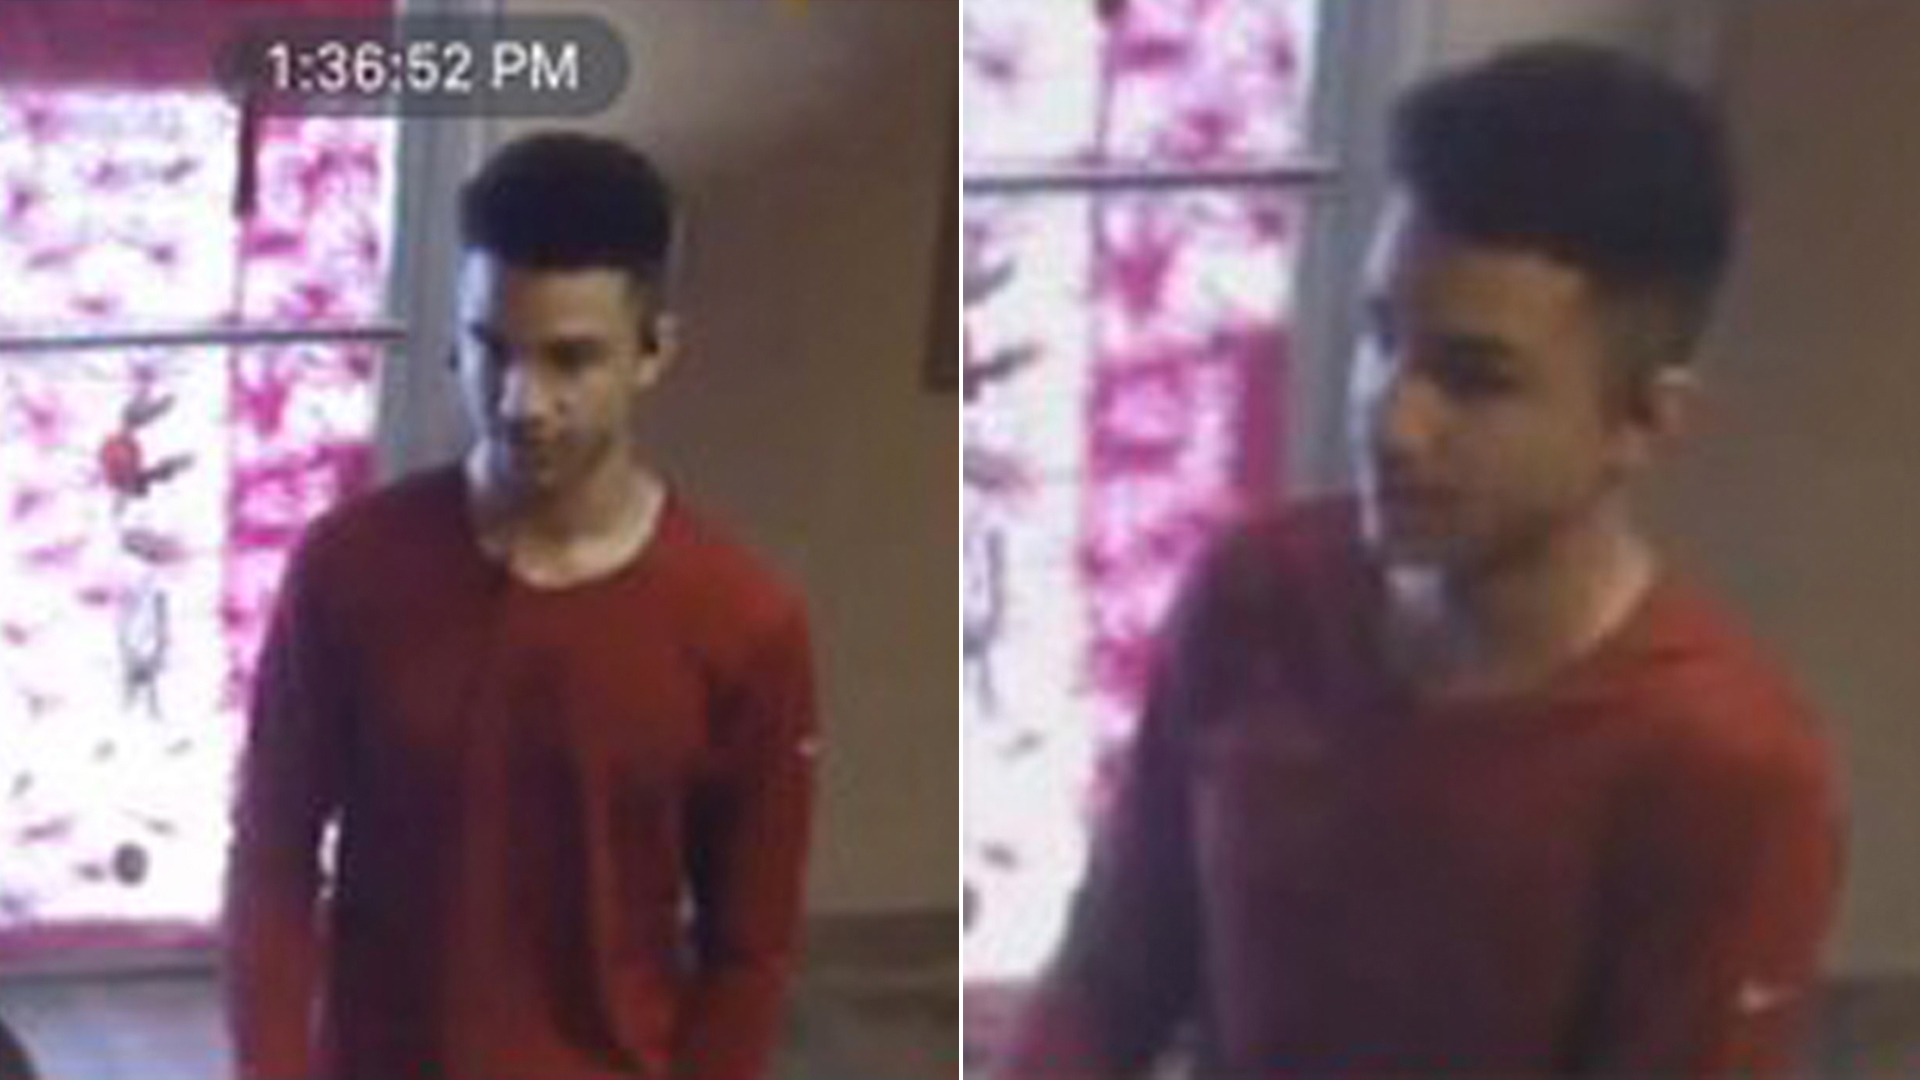 Detectives are seeking the man pictured in this surveillance image in connection with the robbery of a Newhall massage parlor on June 27, 2019. (Credit: Los Angeles County Sheriff's Department)